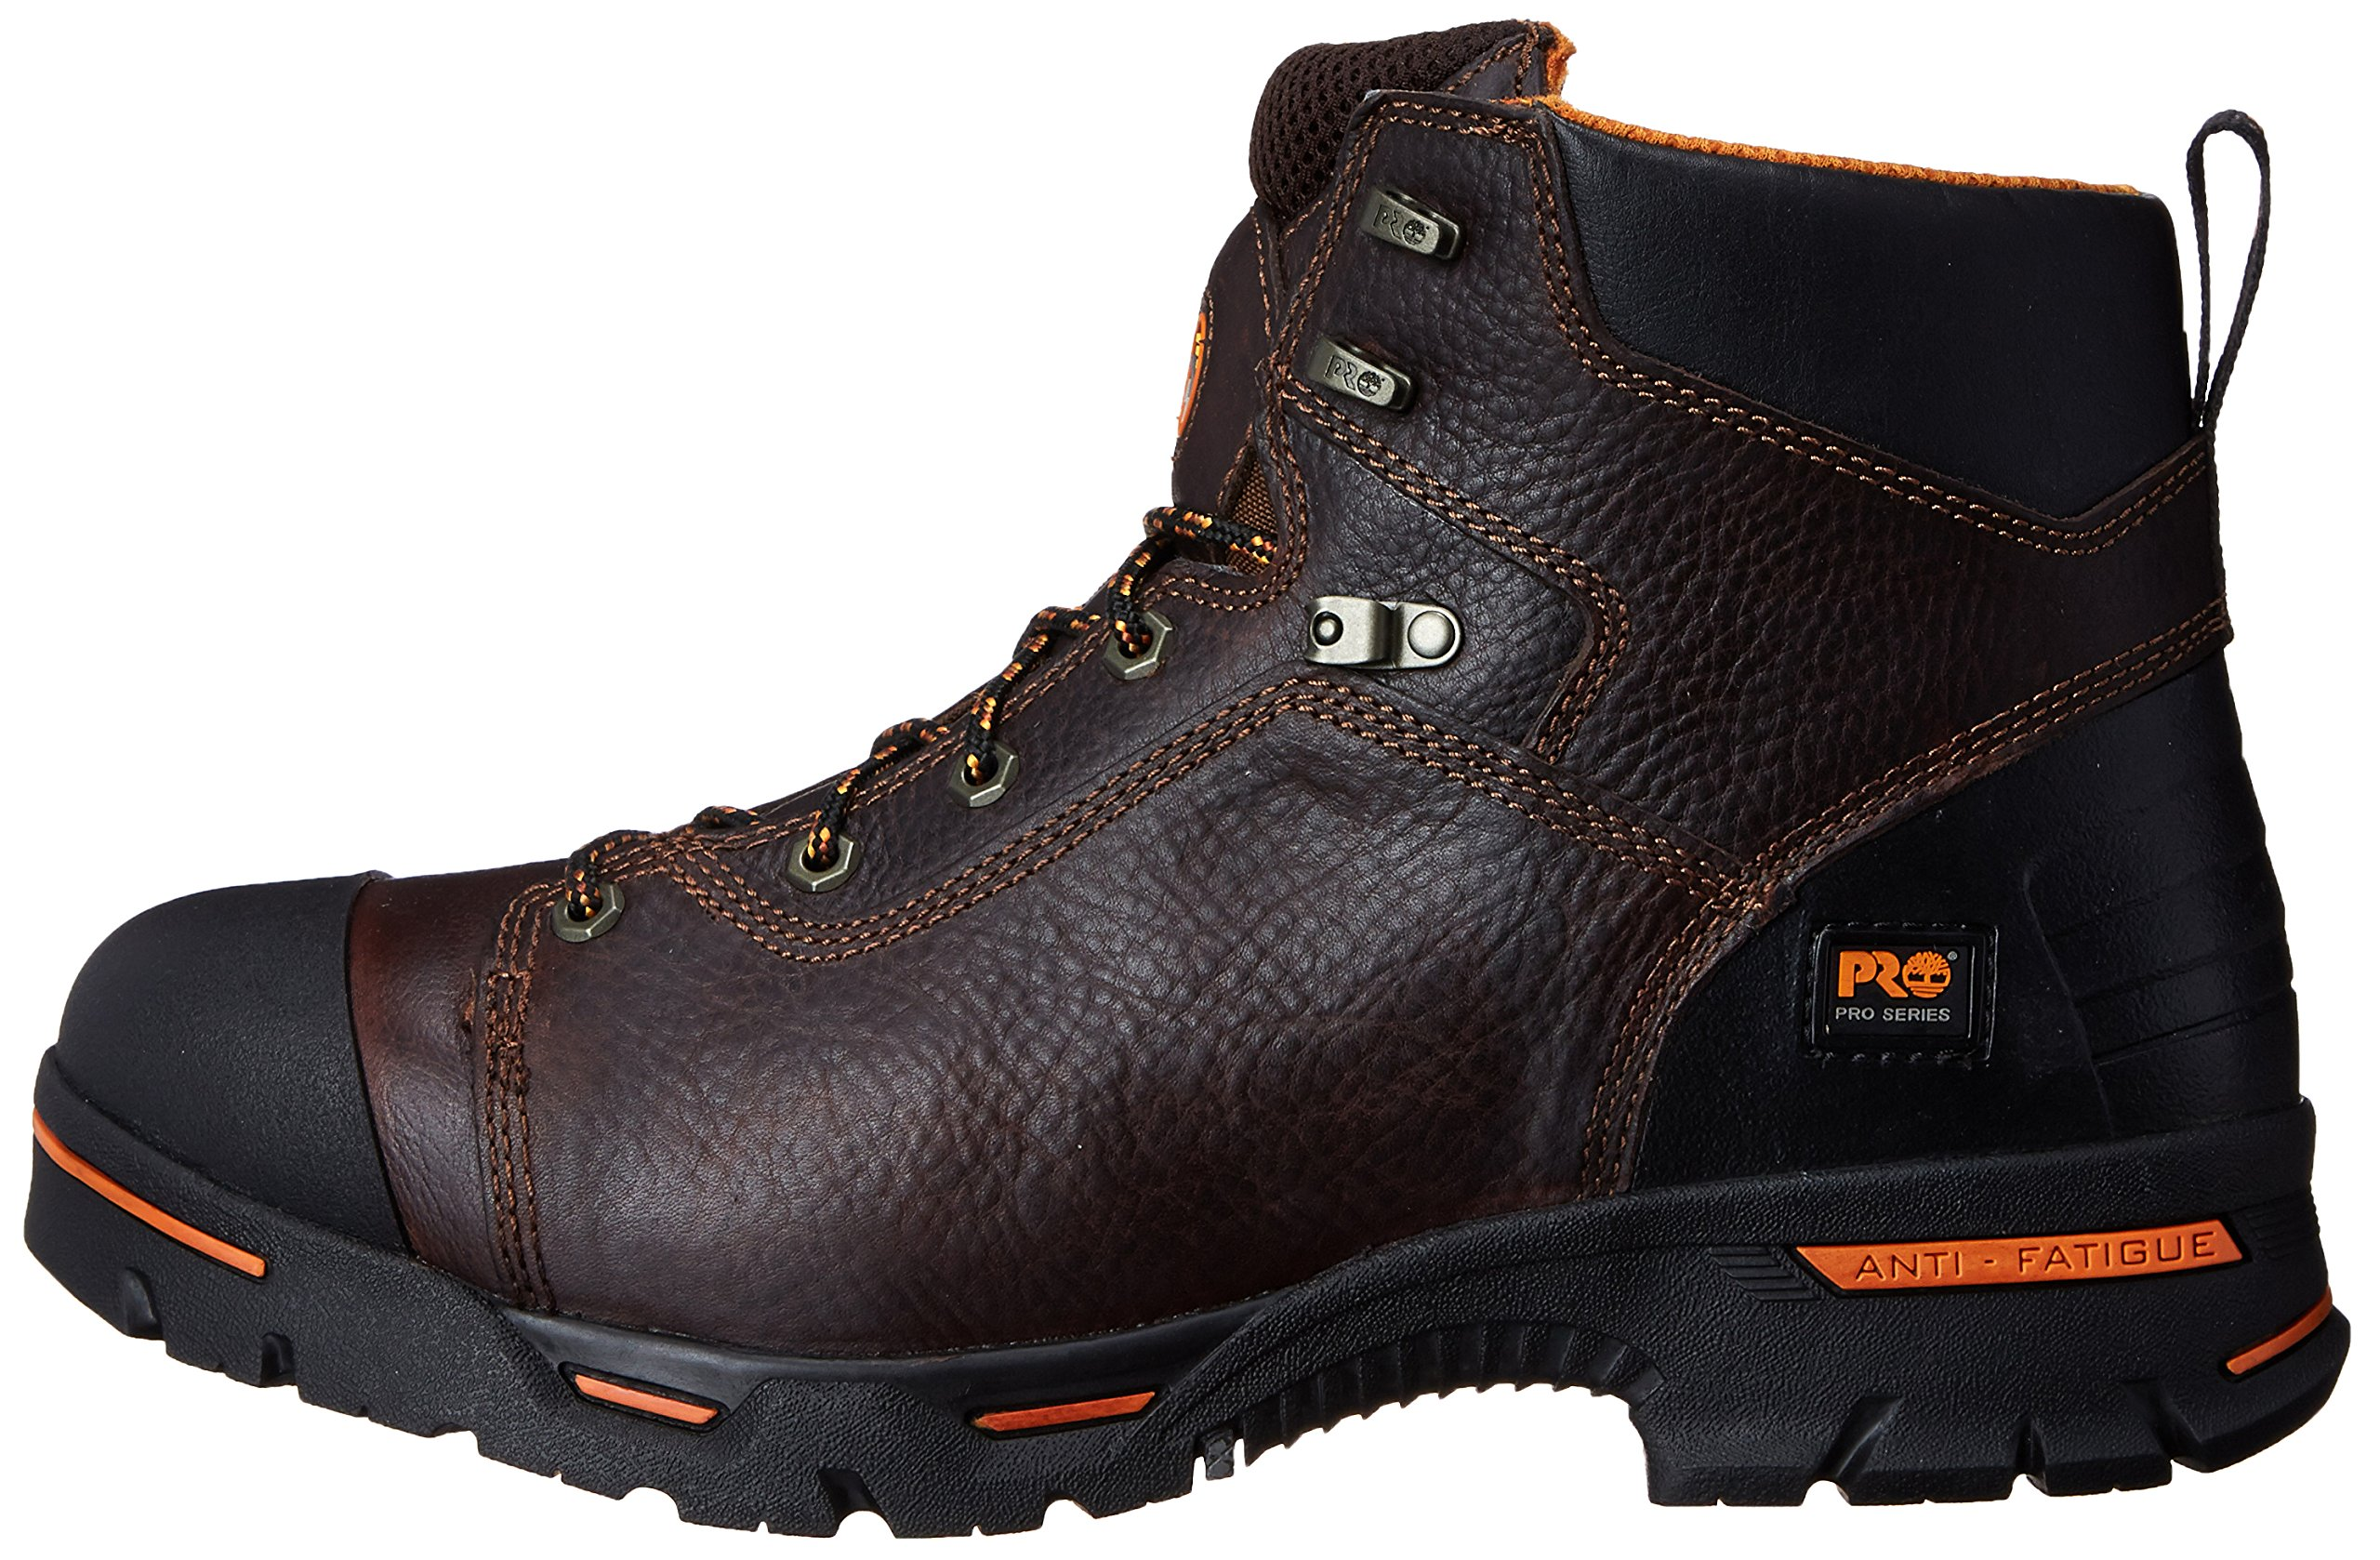 Timberland PRO Men's Endurance 6-Inch Soft Toe BR Work Boot,Briar,9.5 W US by Timberland PRO (Image #5)